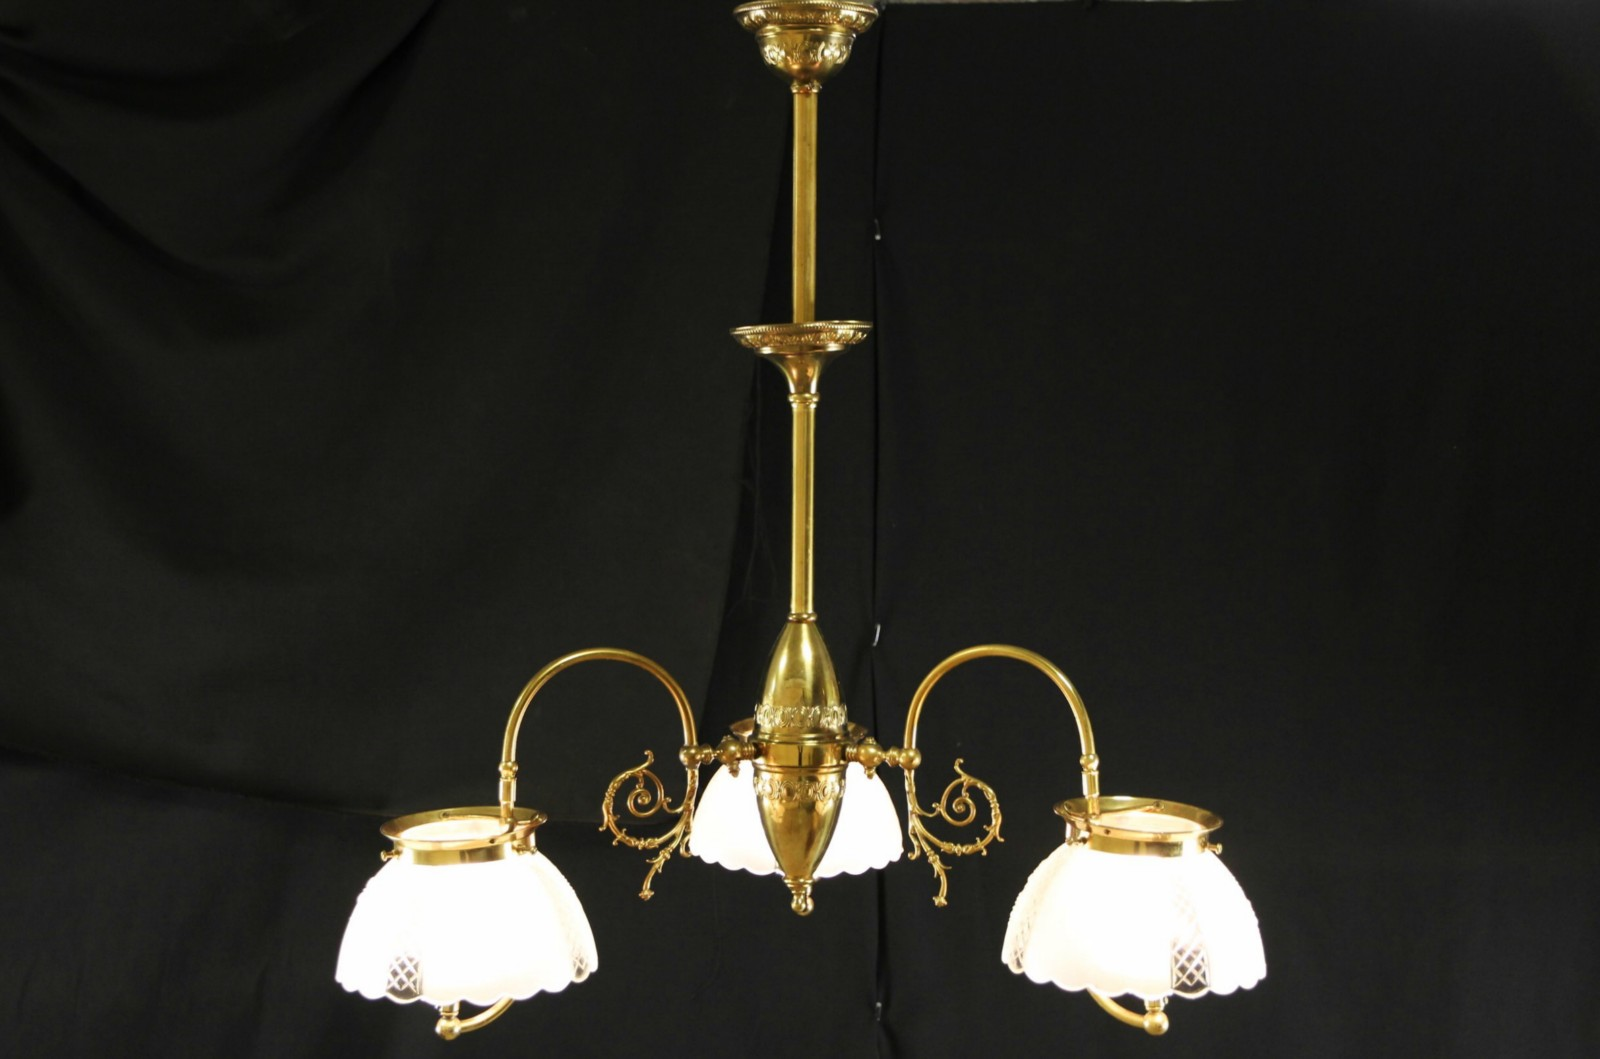 Sold victorian 1890s antique 3 light gas chandelier electrified victorian 1890s antique 3 light gas chandelier electrified aloadofball Image collections